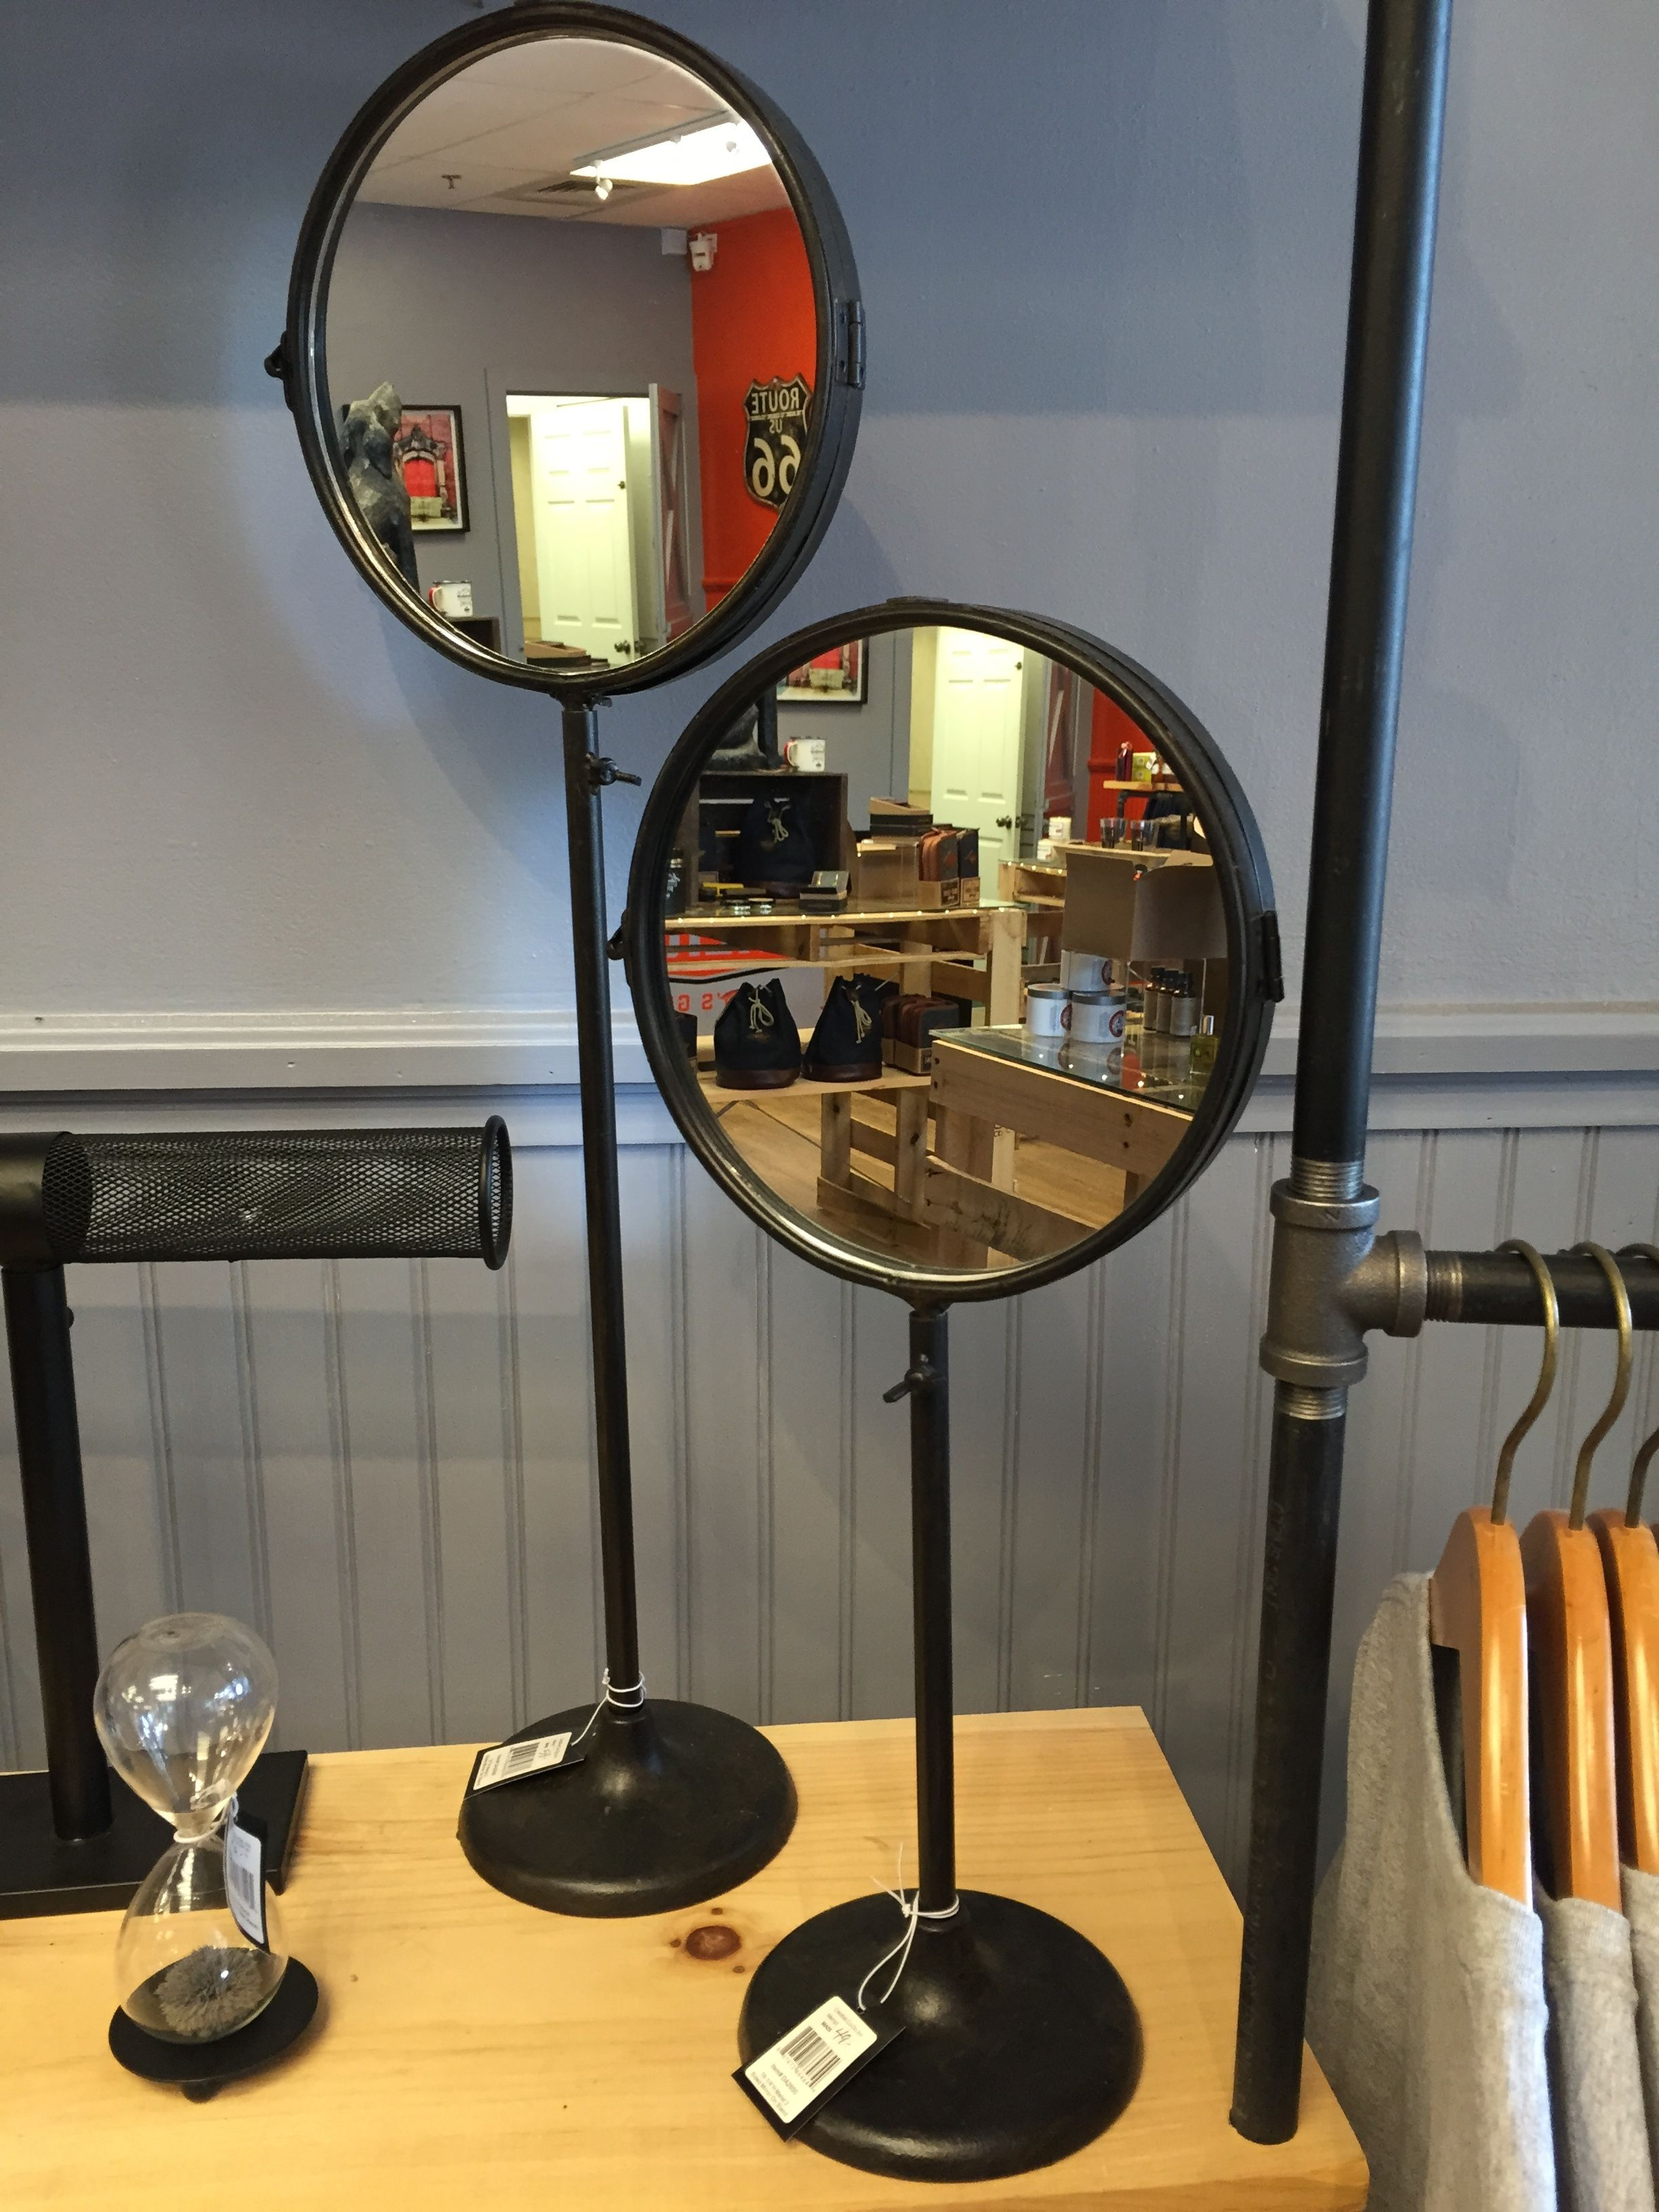 Place A Standing Mirror On Desk Or Dresser To See Reflection Of Door